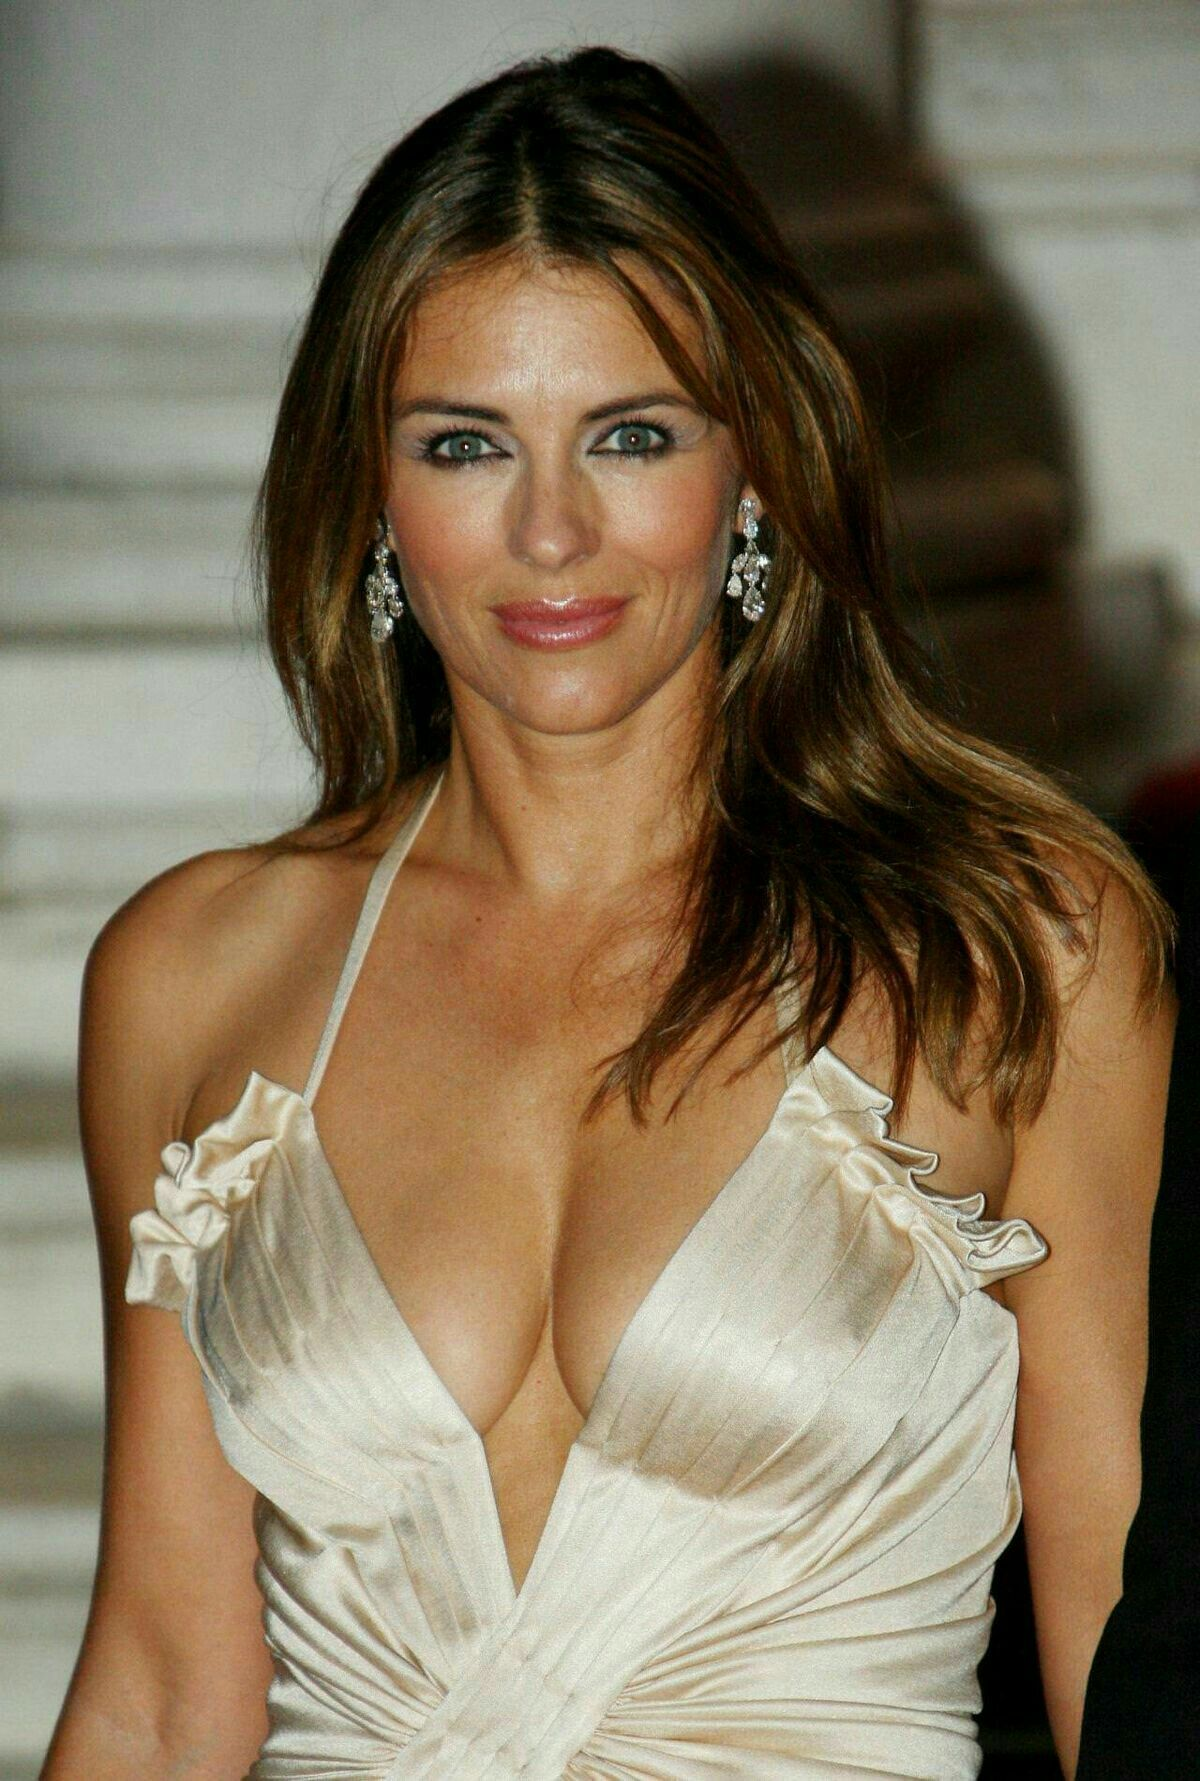 Celebrity Elizabeth Hurley nude photos 2019